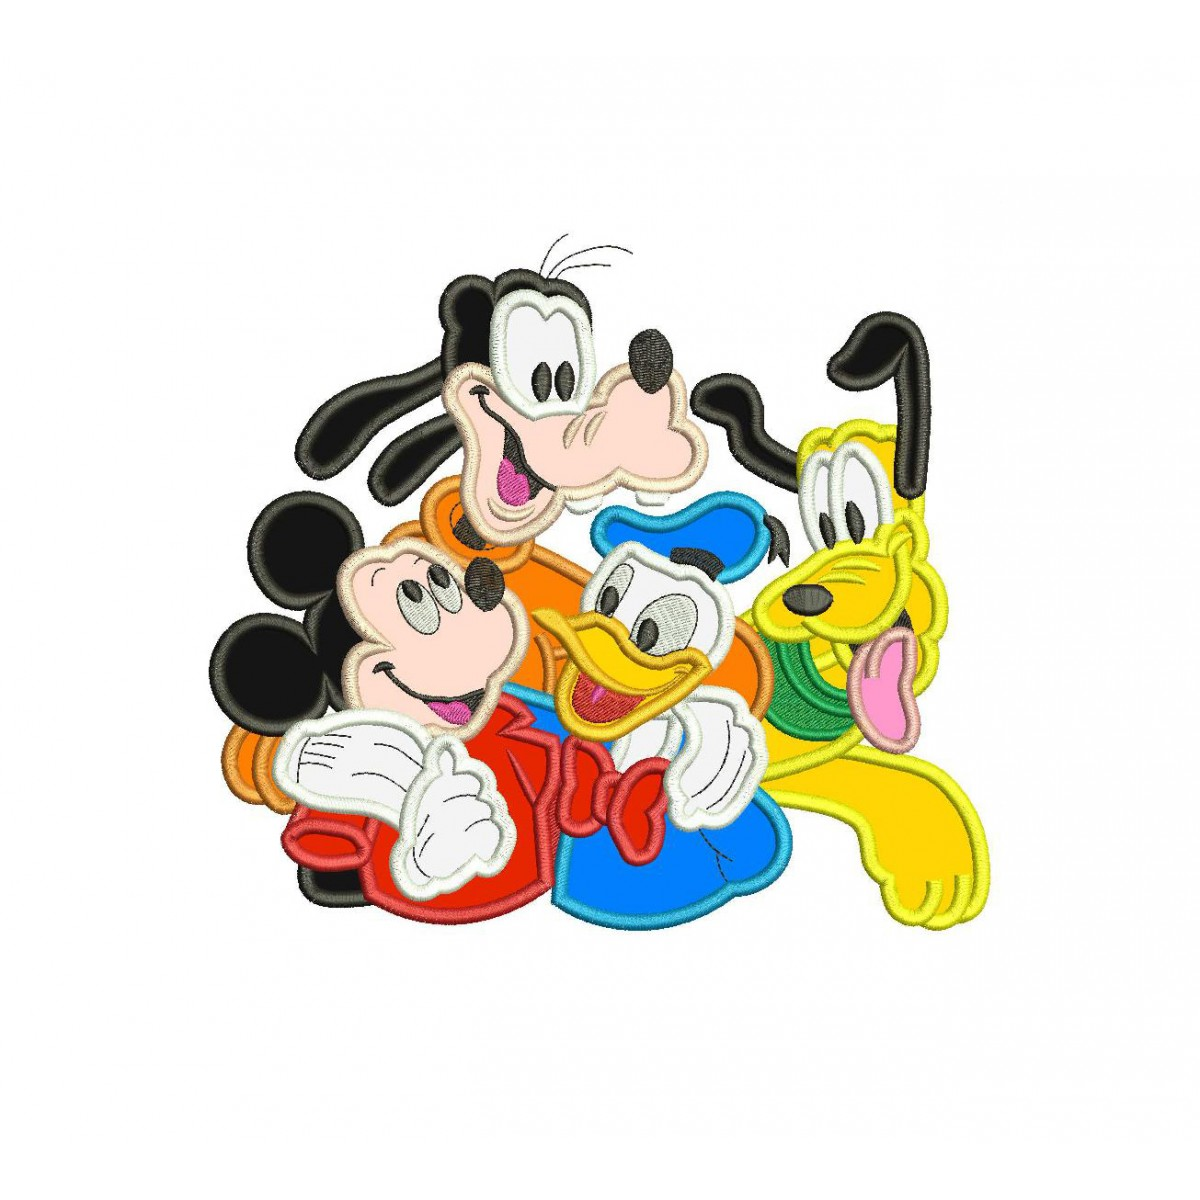 Pluto Mickey Mickey Mouse Goofy Donald And Pluto Applique Design